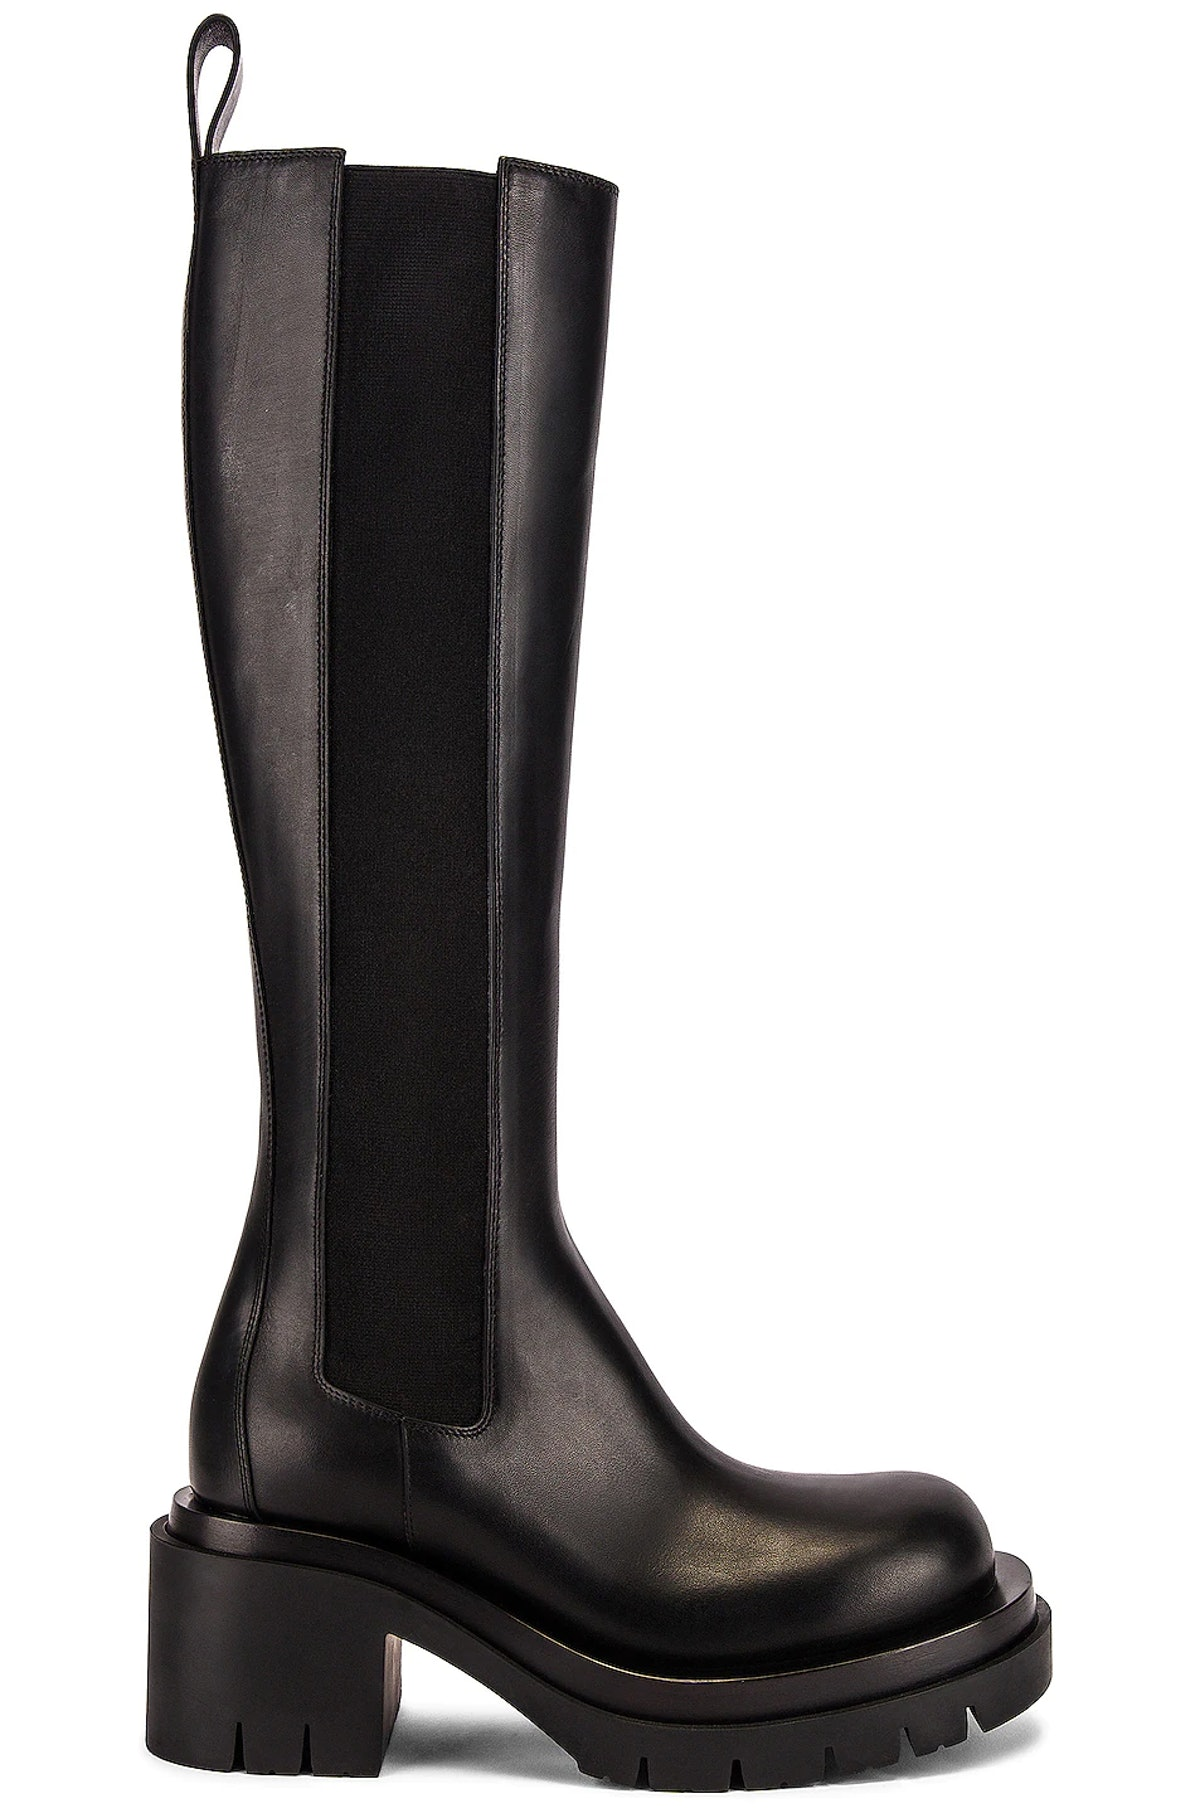 Brown lug high top Chelsea boots from Bottega Veneta, available to shop via Kendall Jenner's edit on...